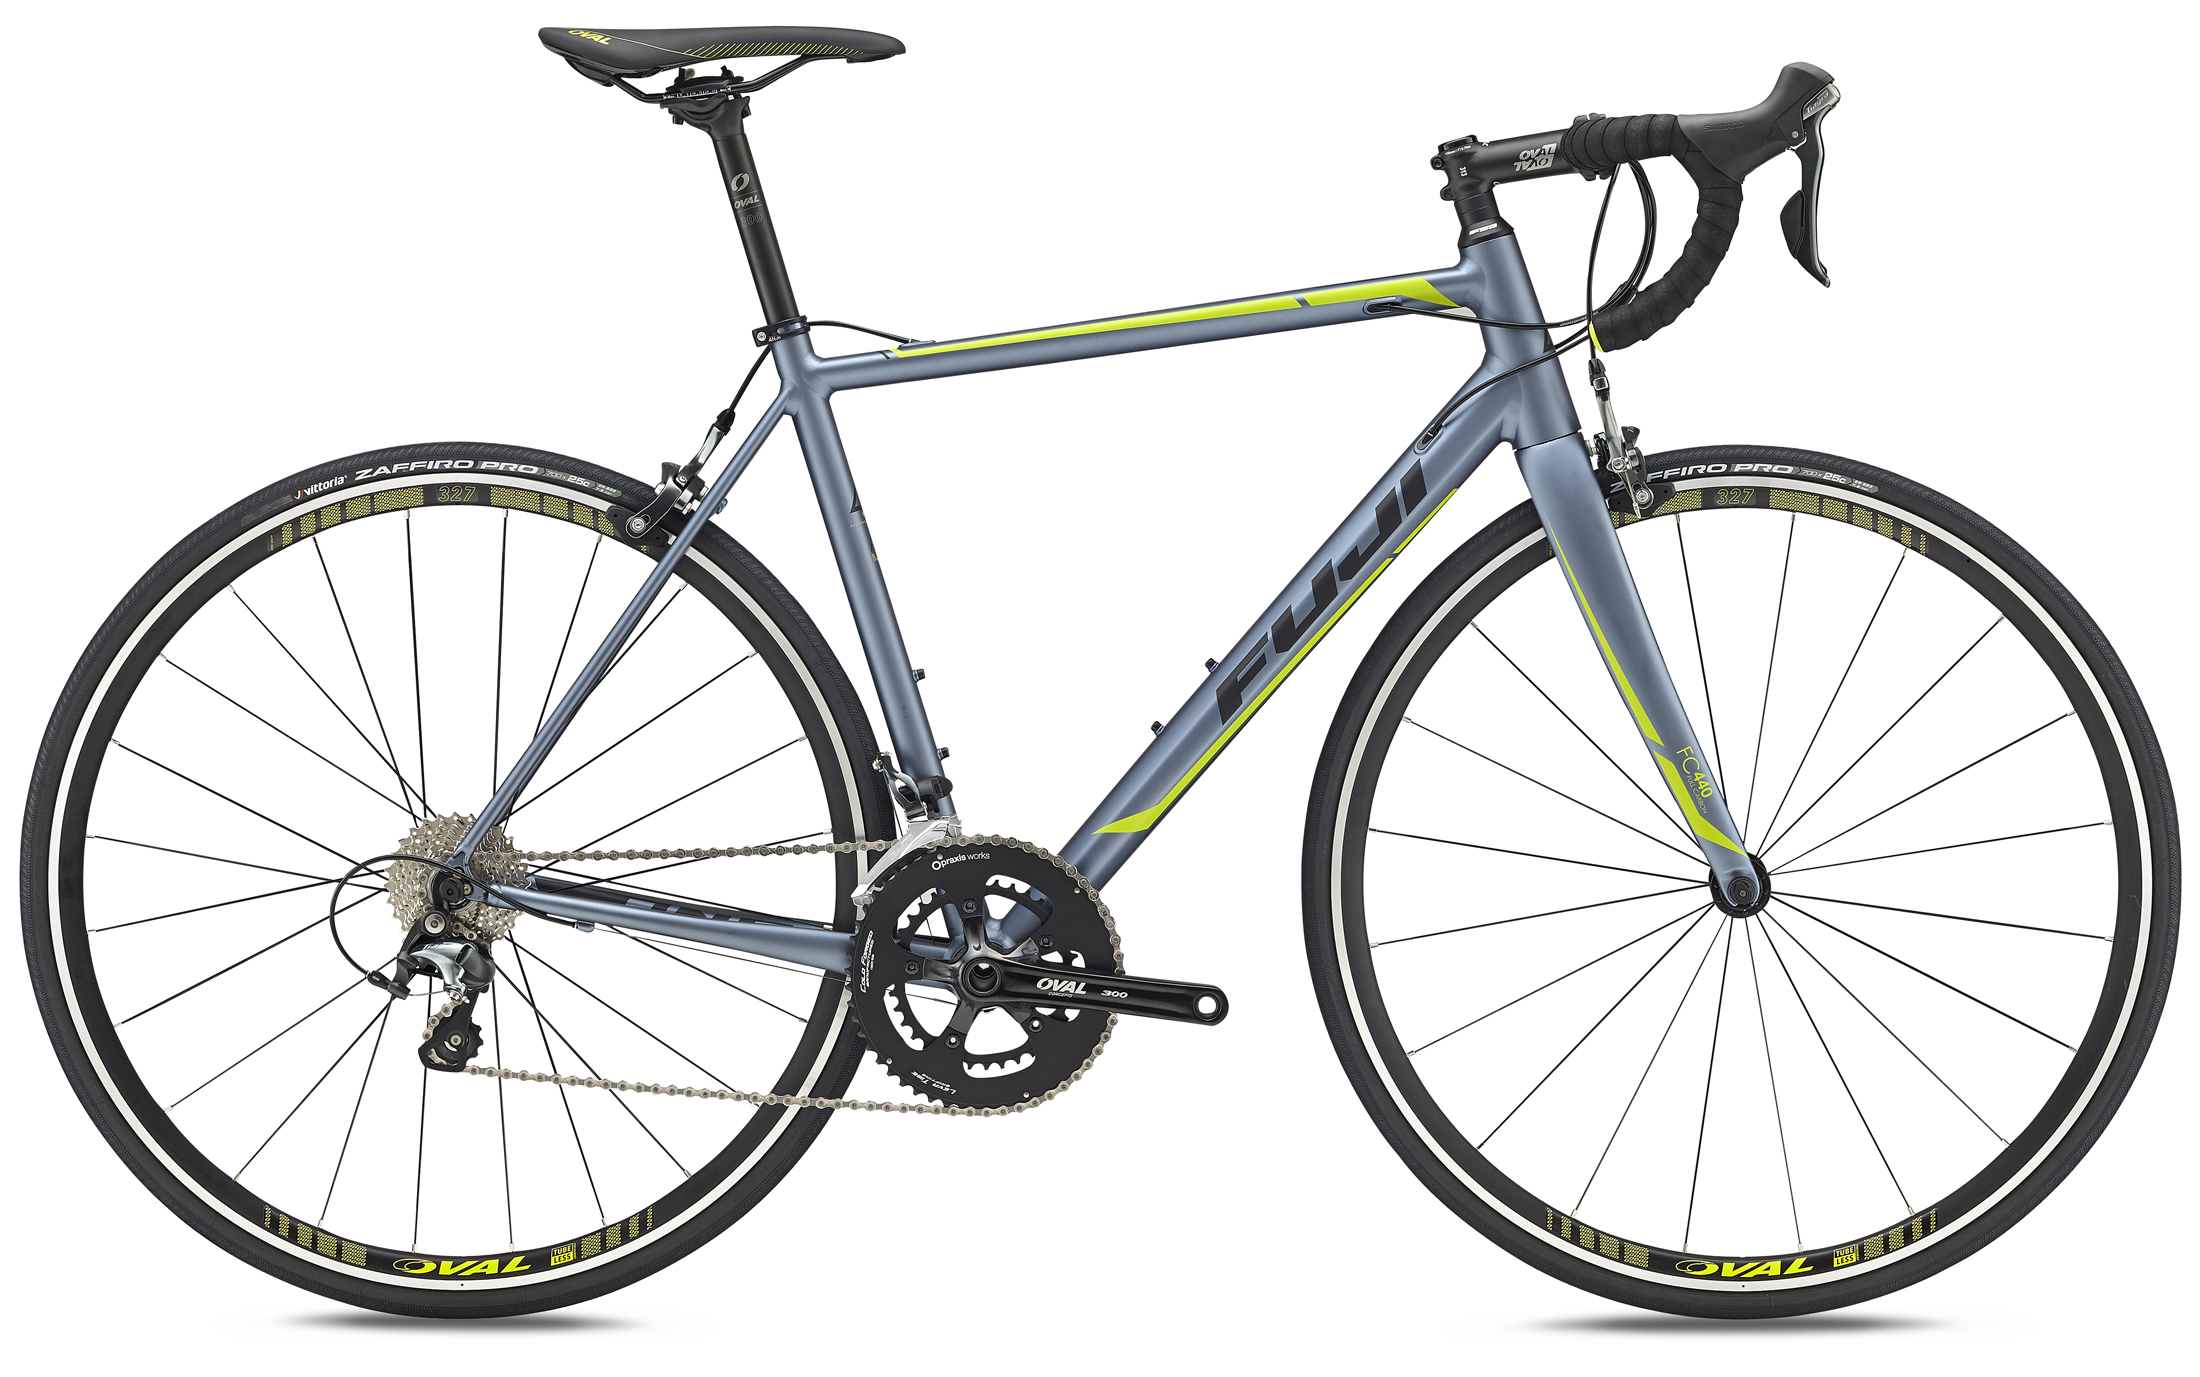 Bikes 2017 Fuji Roubaix 1.5 Tiagra Equipped Aluminum Road Bike Image